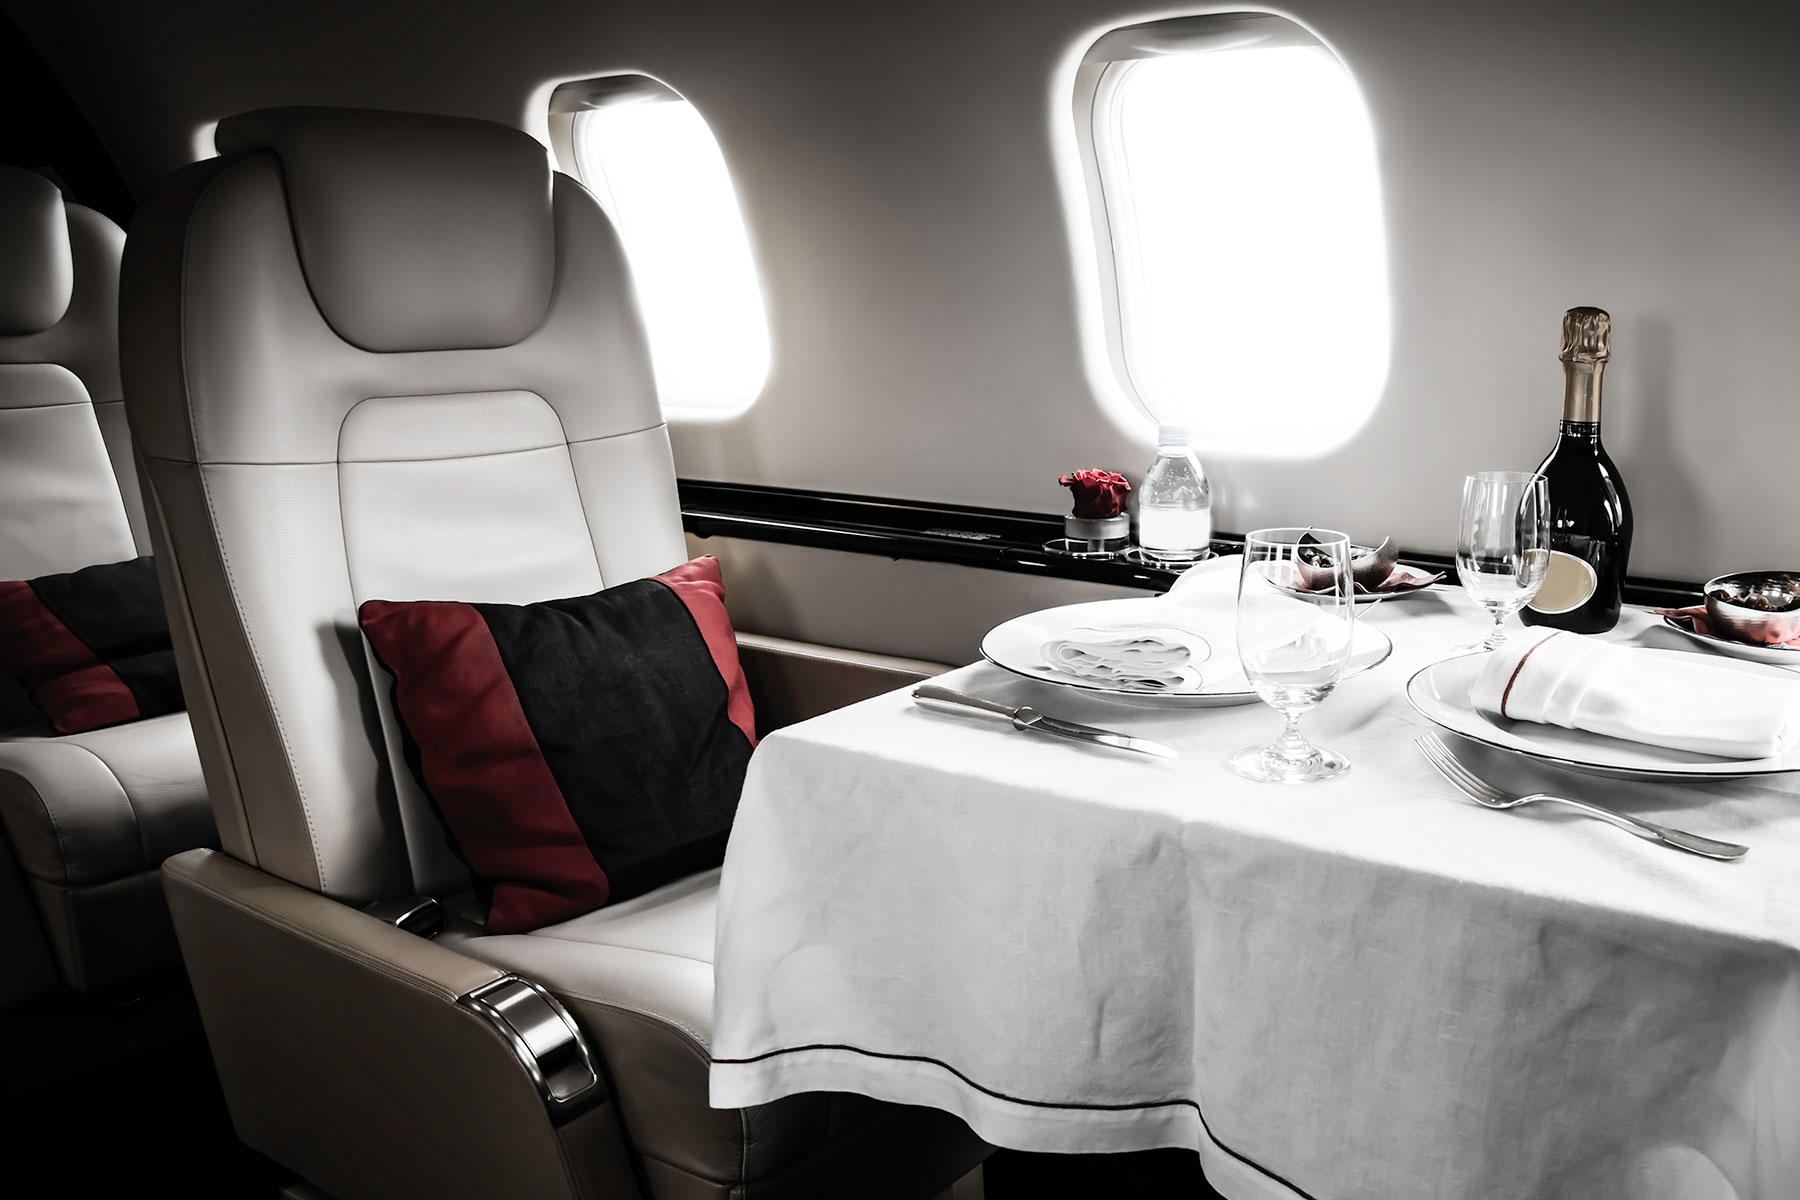 A finely appointed dinner service aboard a Gulfstream private jet aircraft